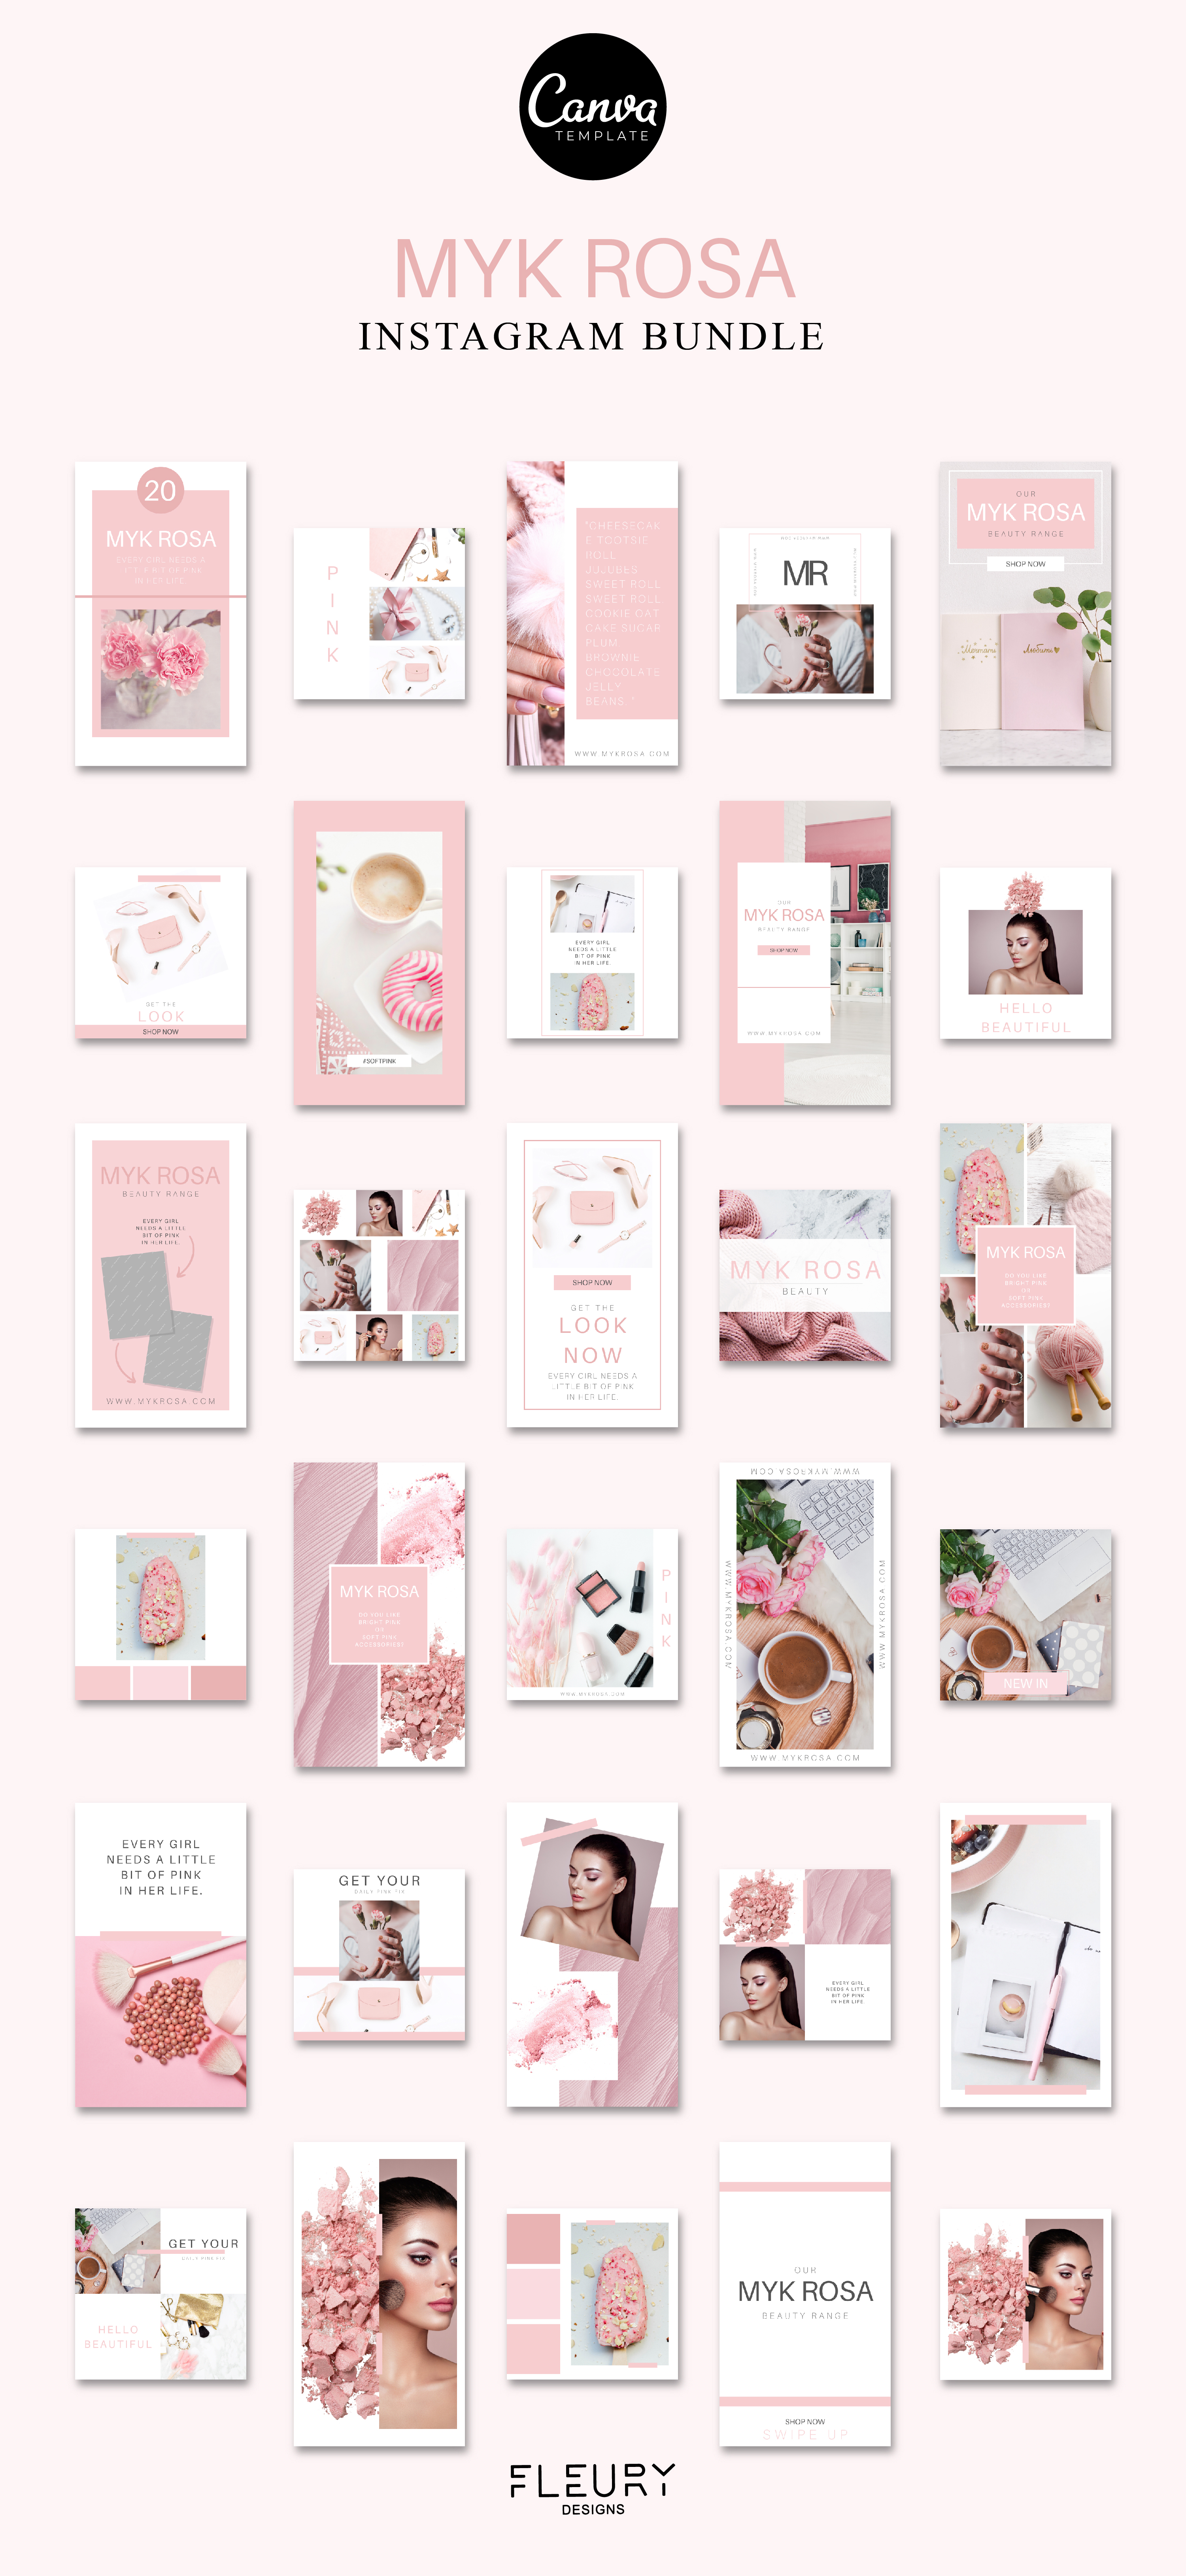 60 Instagram Post & Story Templates For Canva - Myk Rosa example image 5